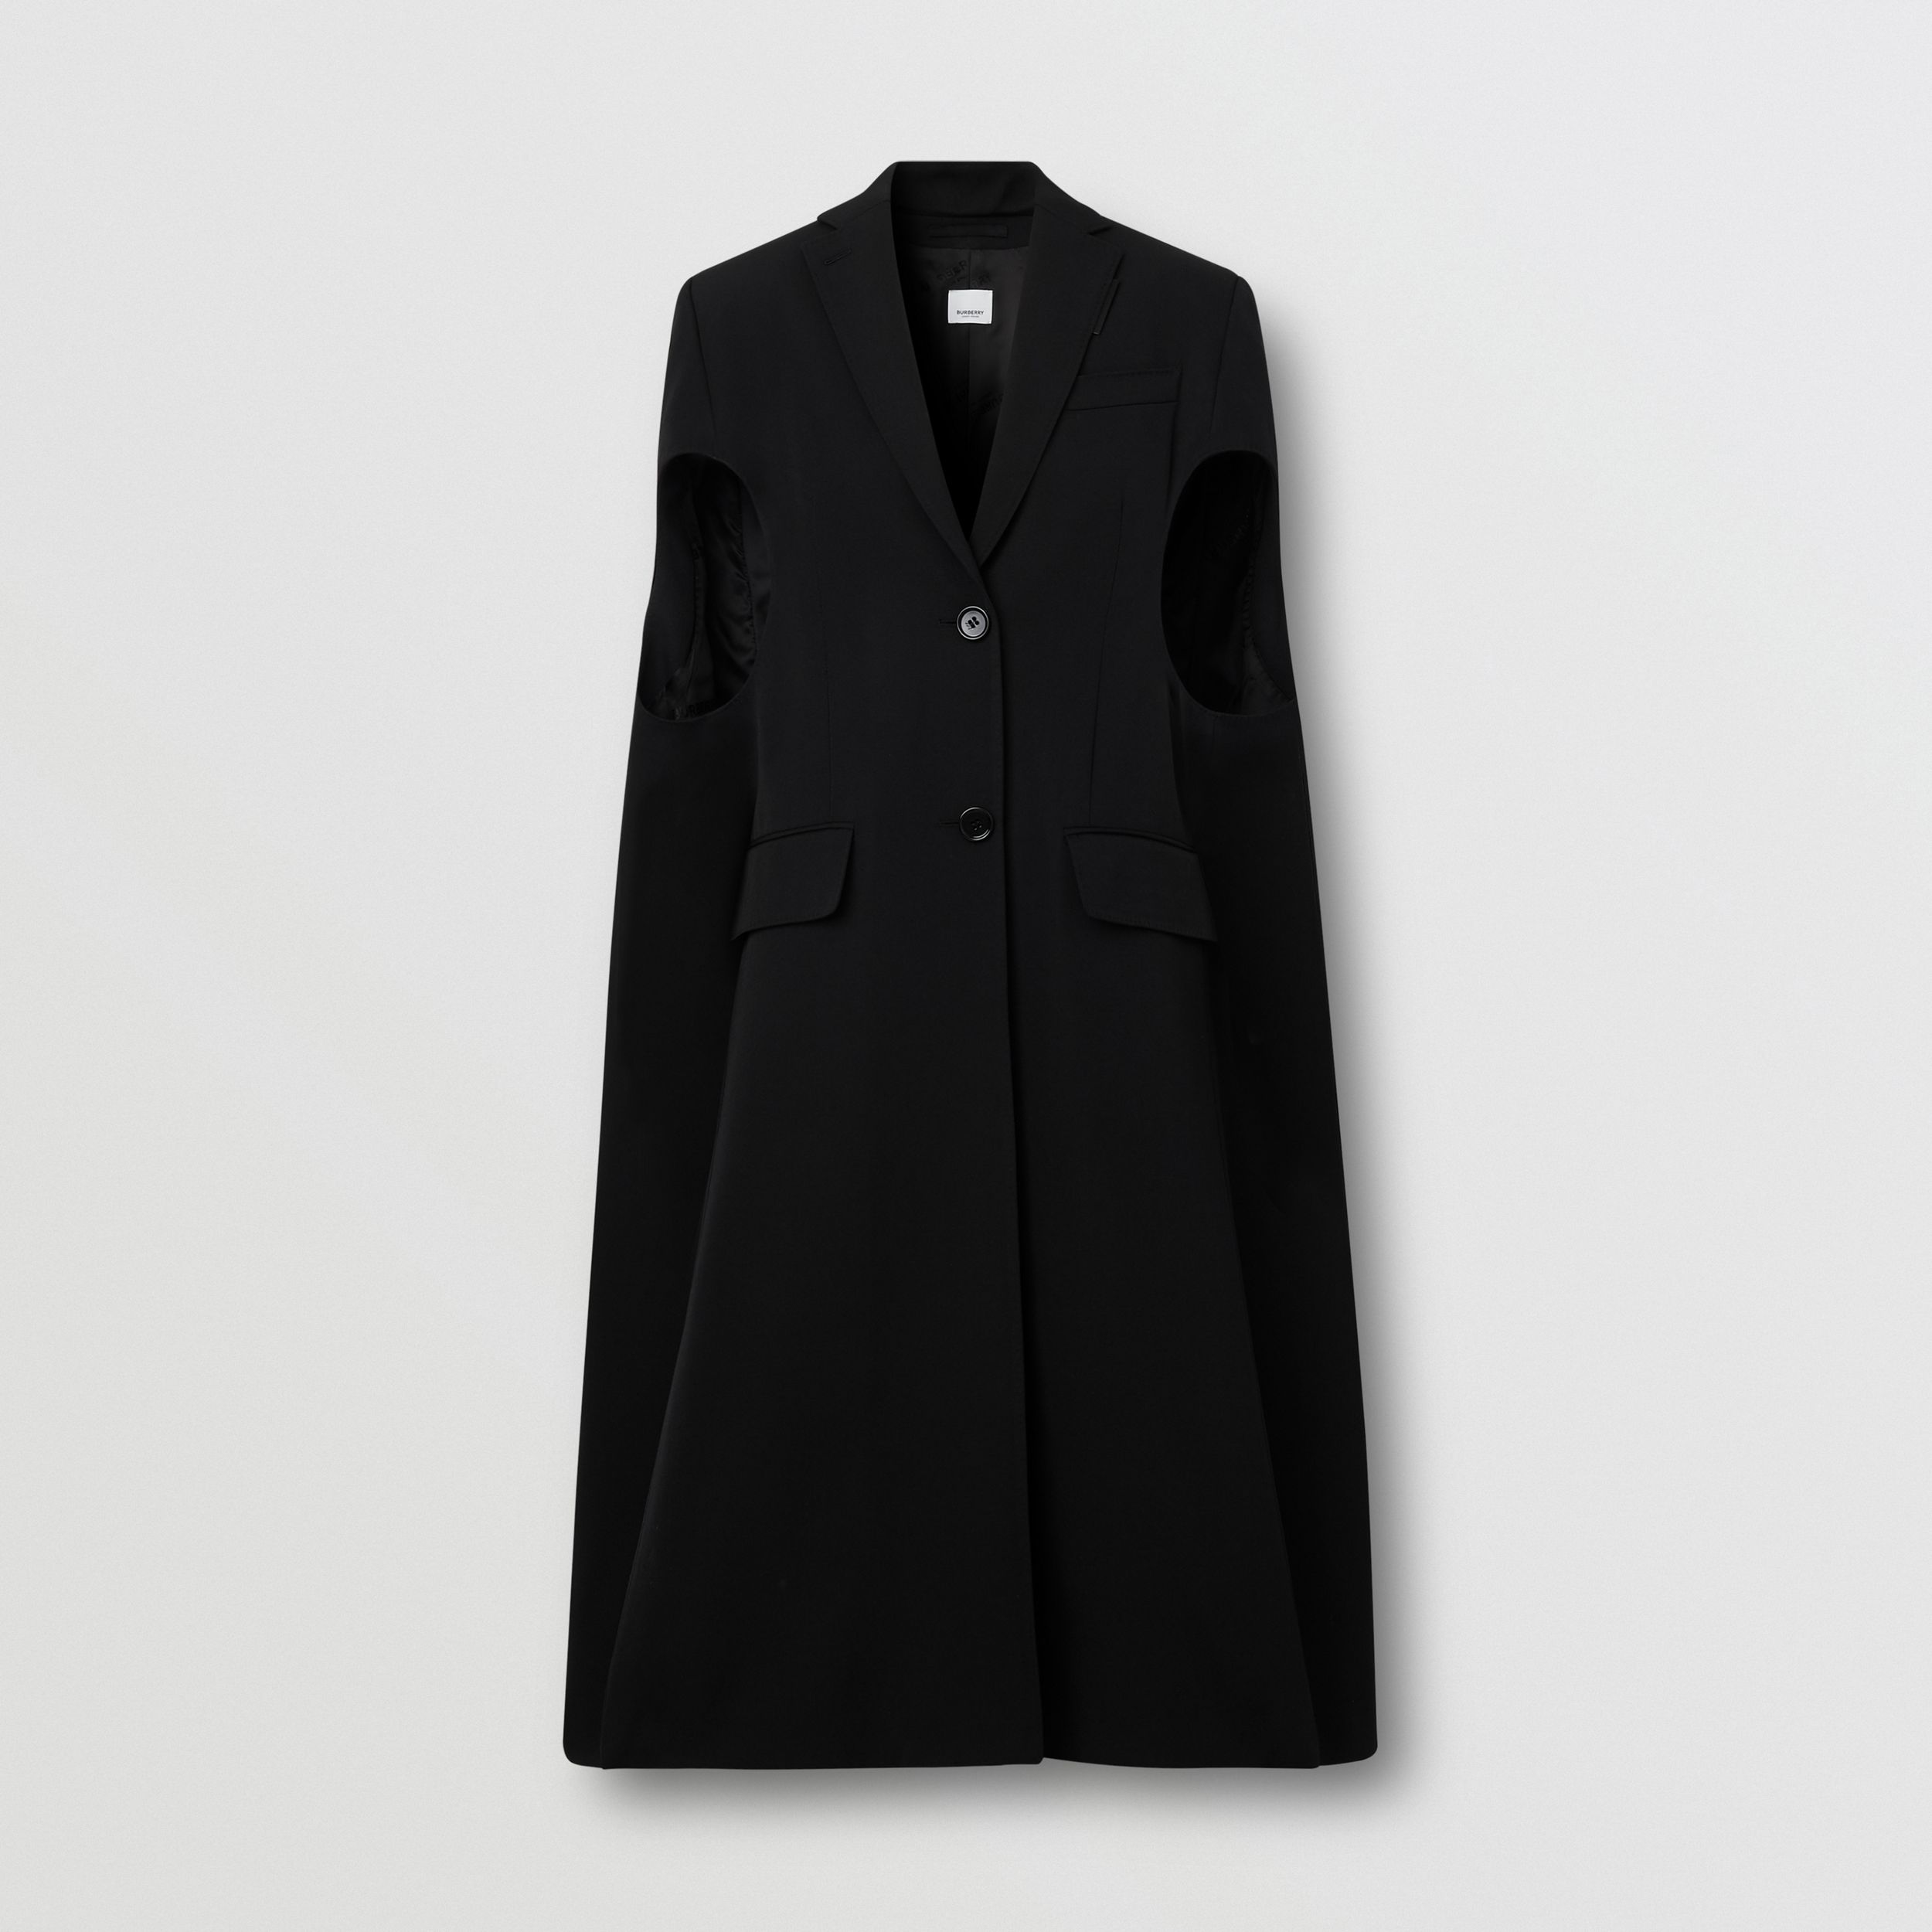 Grain De Poudre Wool Tailored Cape in Black - Women | Burberry Australia - 4